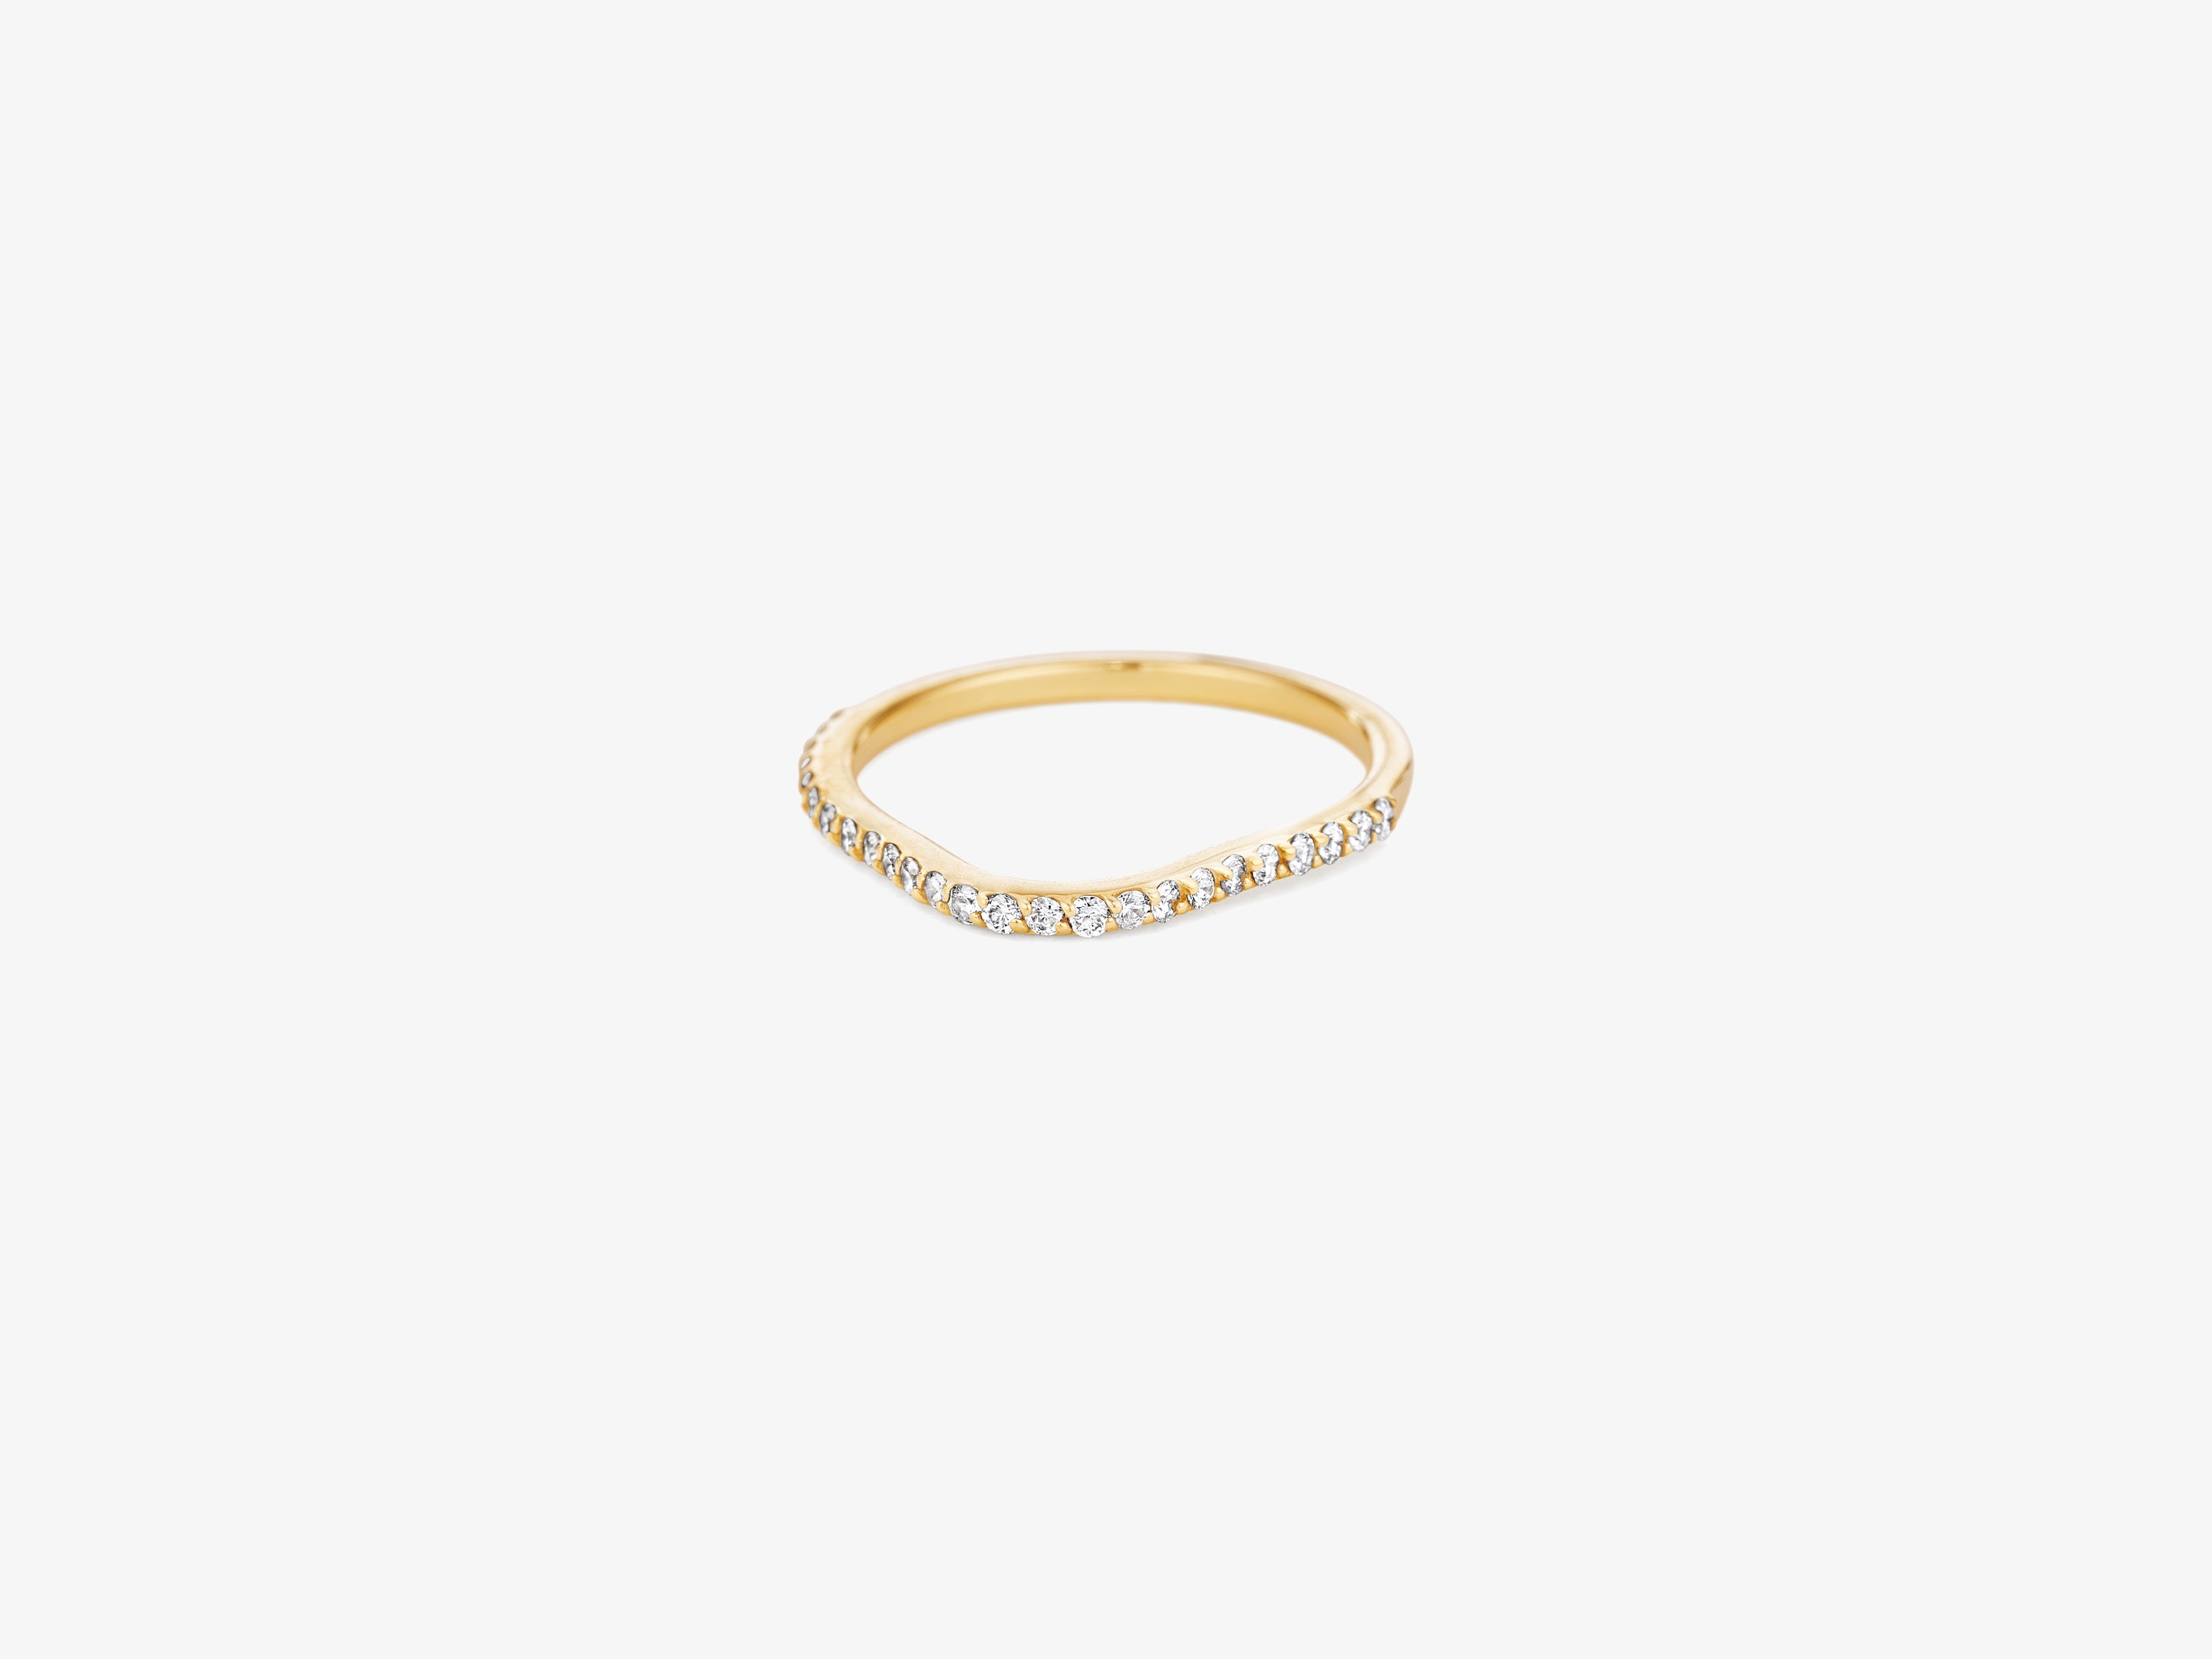 Slender Wavy Ring with Diamond Pave